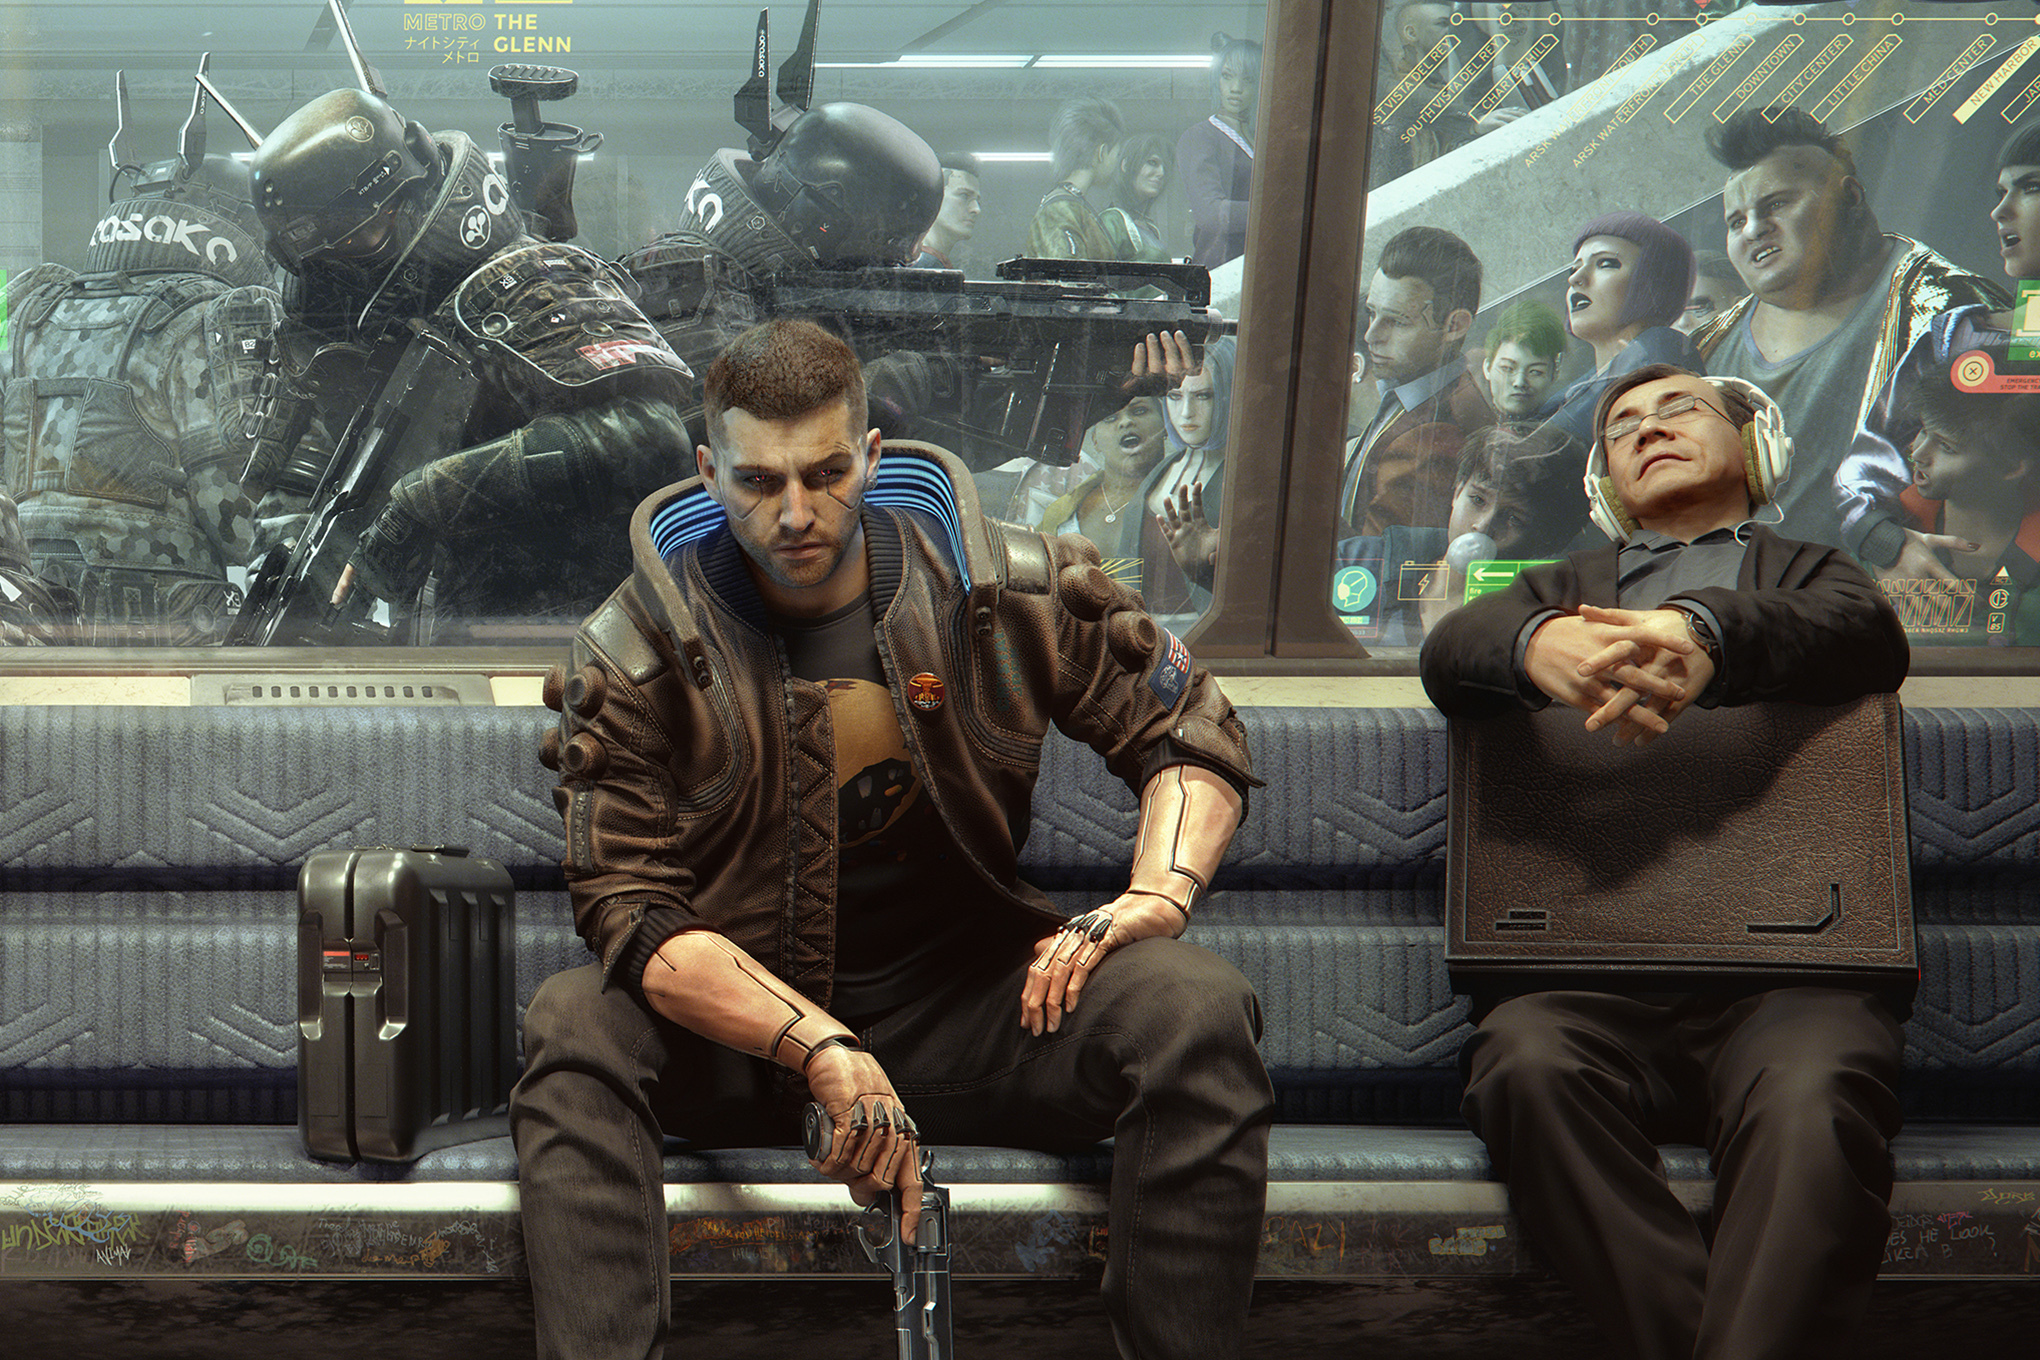 A character in Cyberpunk 2077 sits on a train